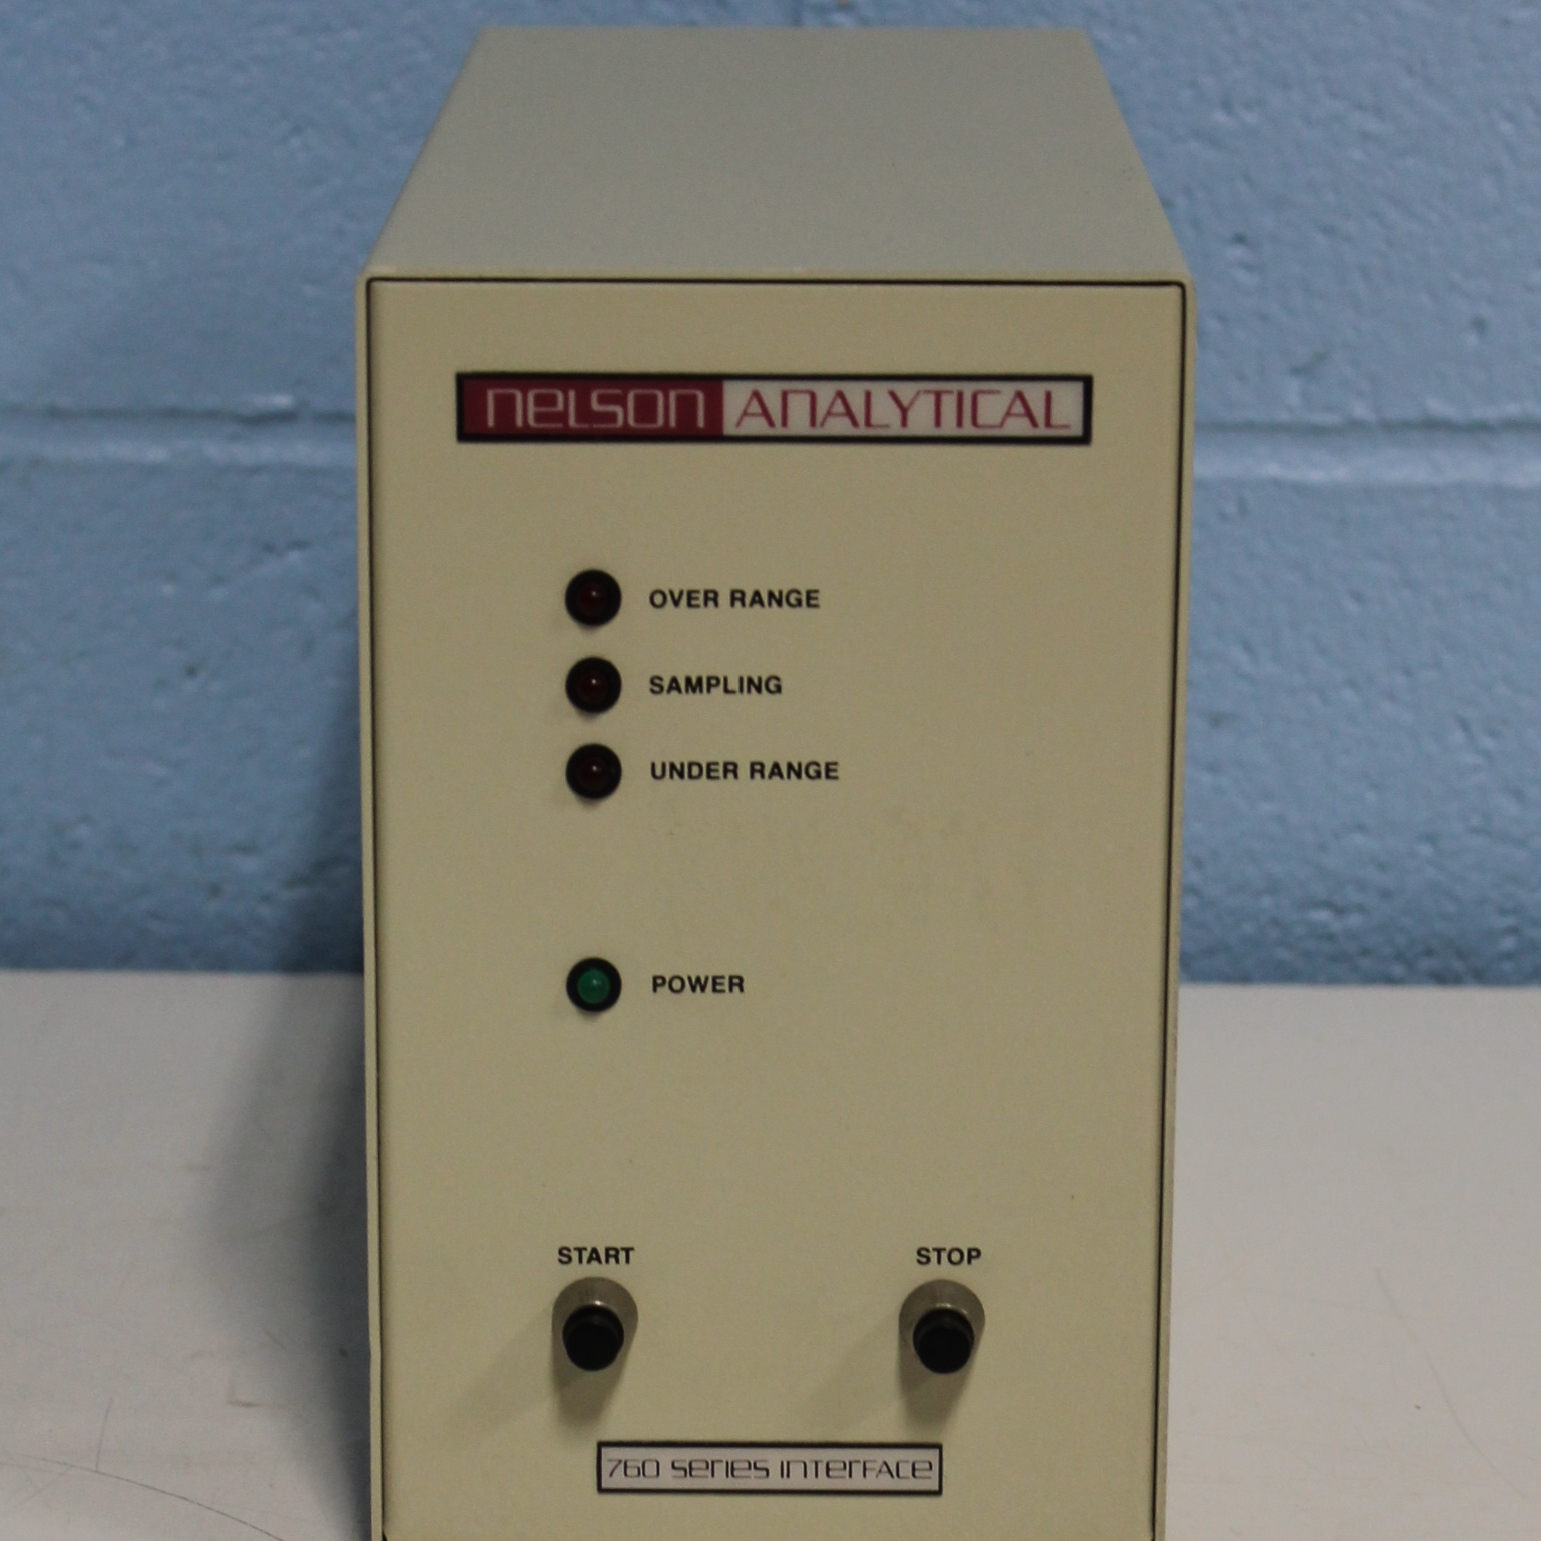 Nelson Analytical 760 Series Interface Image